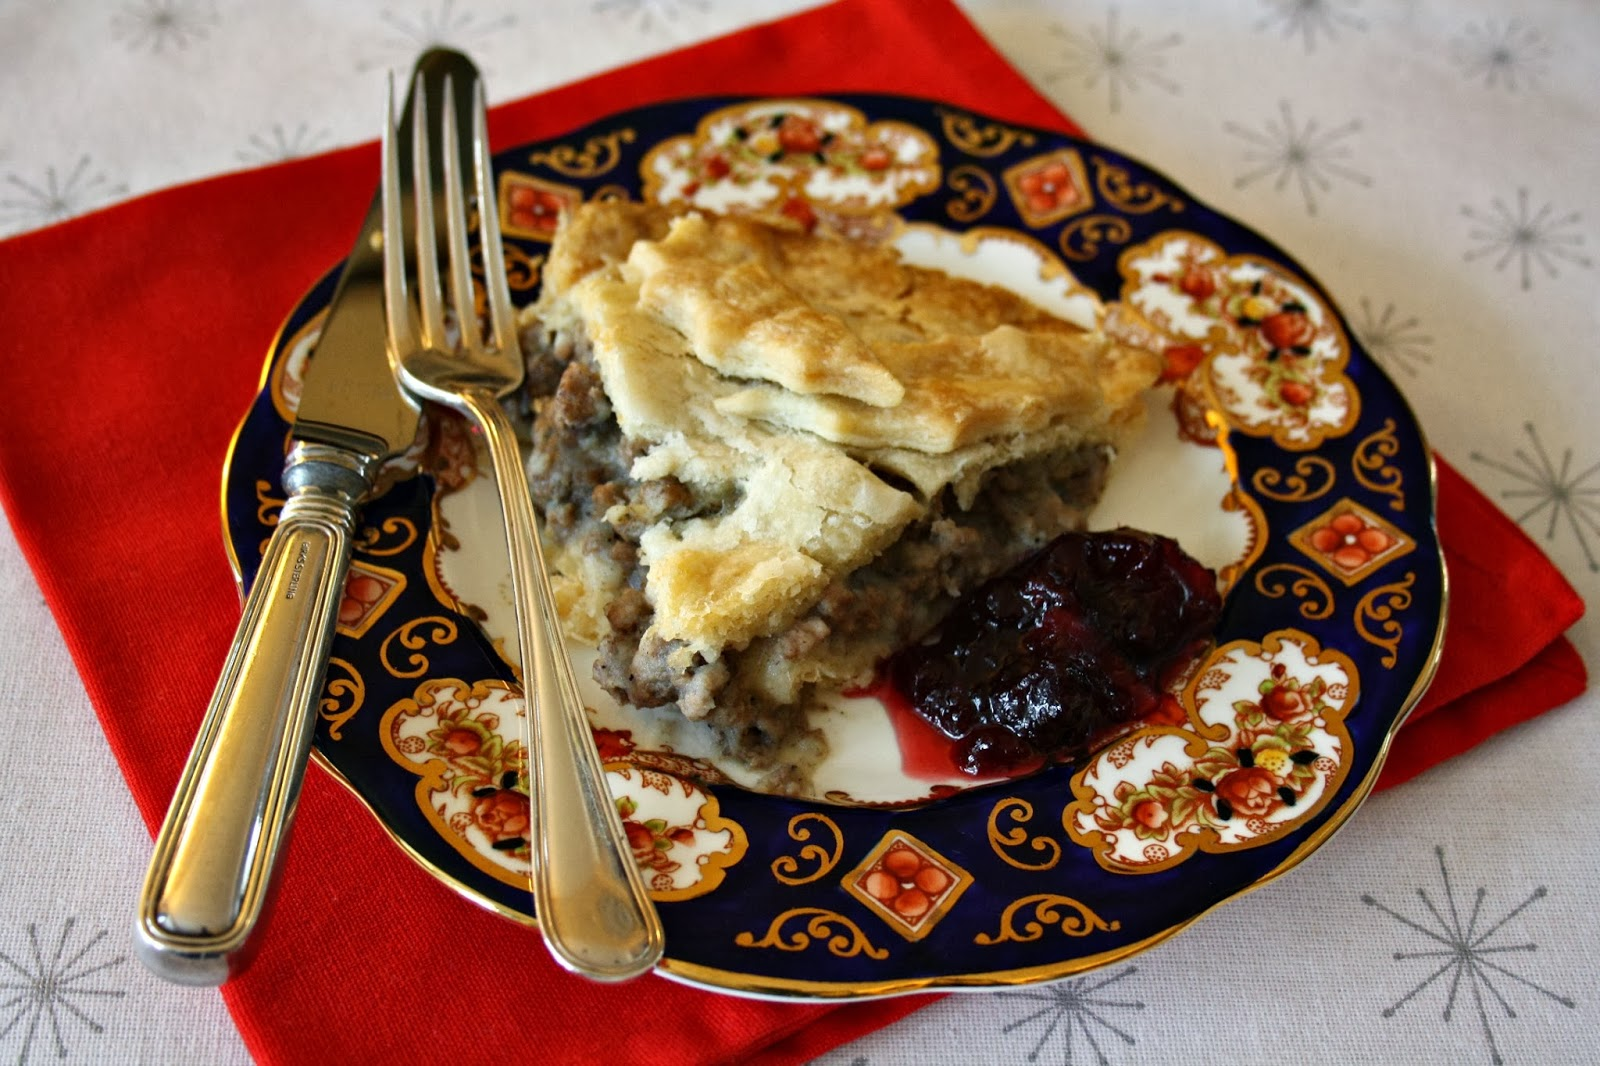 Traditional tourtiere recipe - a lightly seasoned meat pie